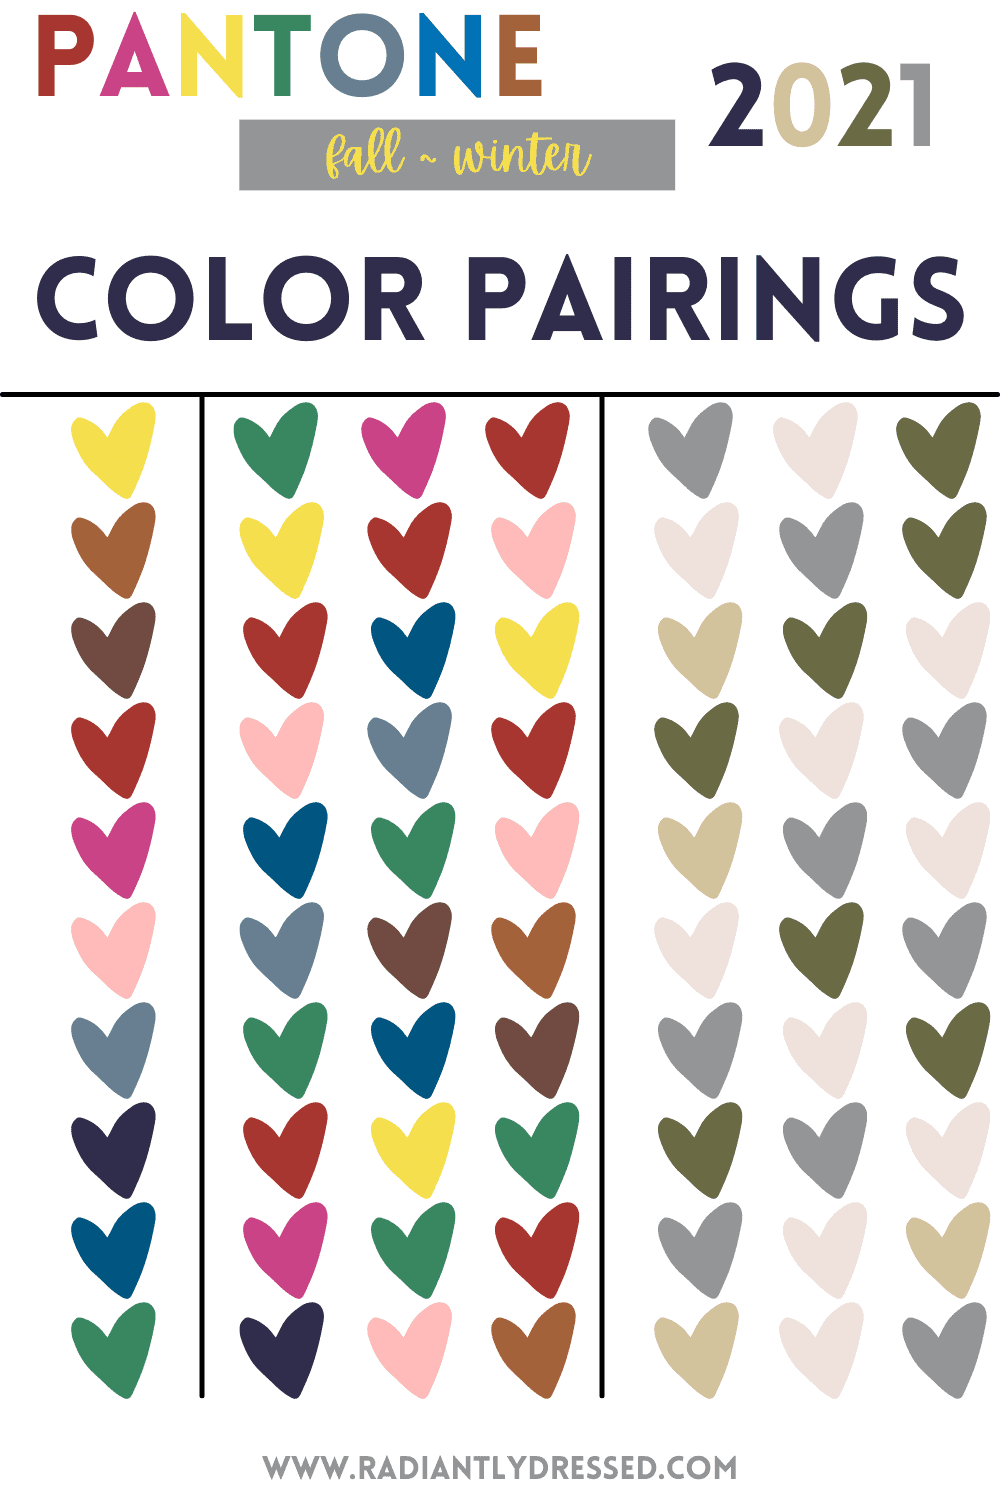 Pantone colors paired with each other.